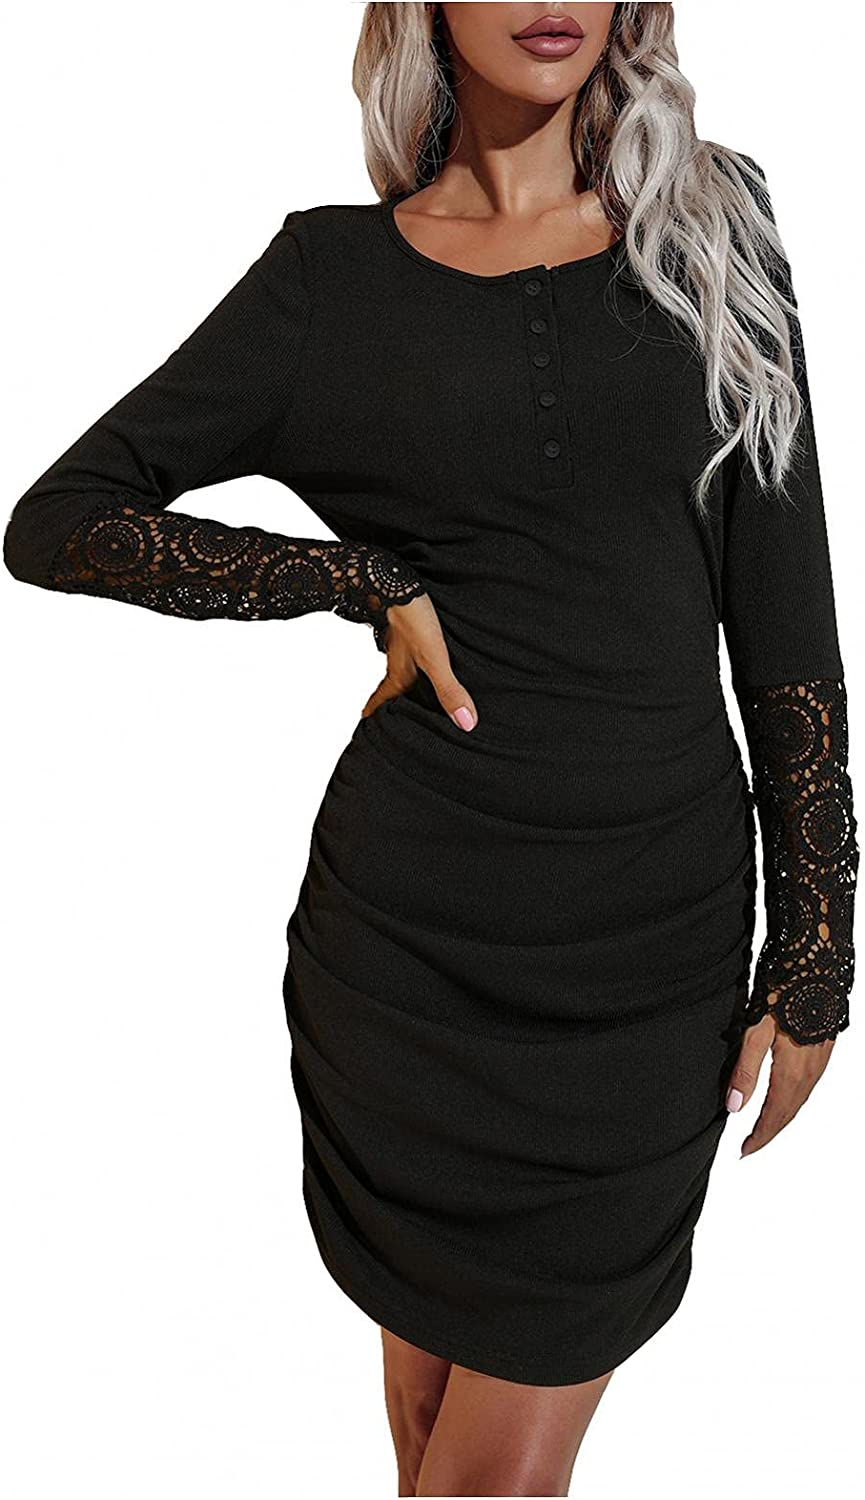 Women Ruched Bodycon Dress Full Sleeve Lace Splicing Solid Color Casual Basic Fitted Short Dresses O-Neck Button Dress